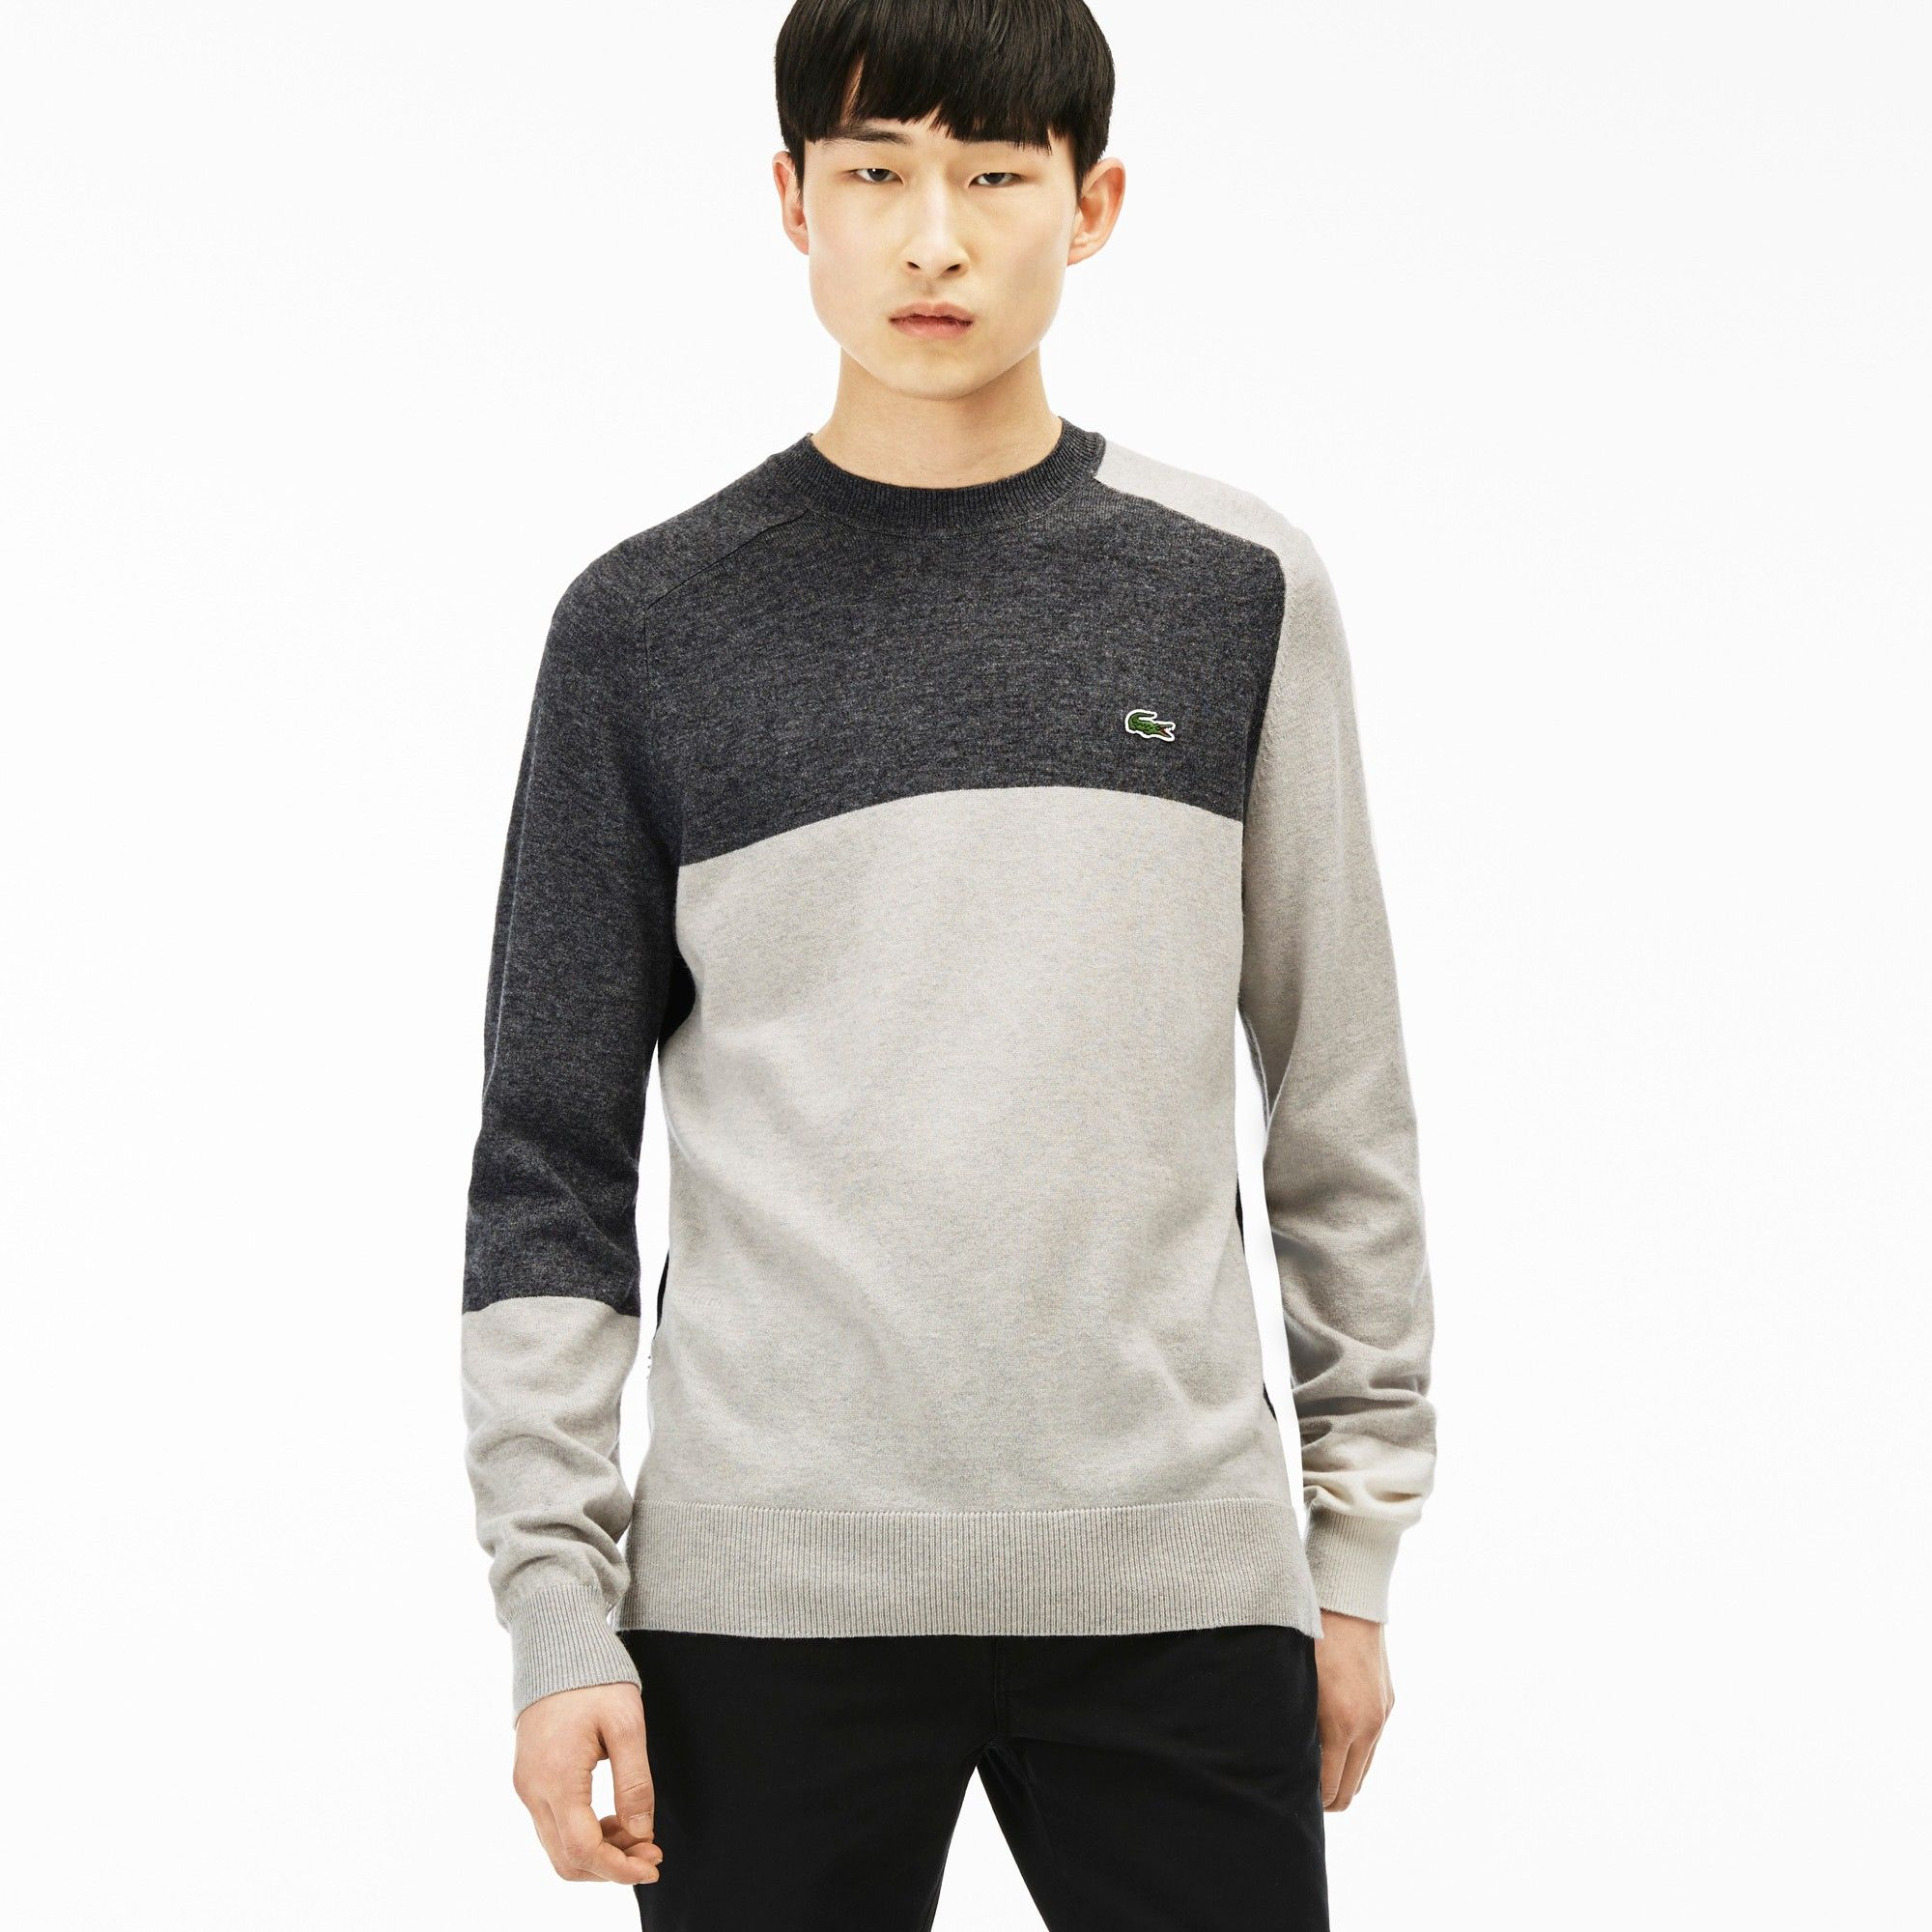 0df099126 LACOSTE Men s L!VE Color Block Crewneck Sweater - paladium chine medium  gre.  lacoste  cloth  all